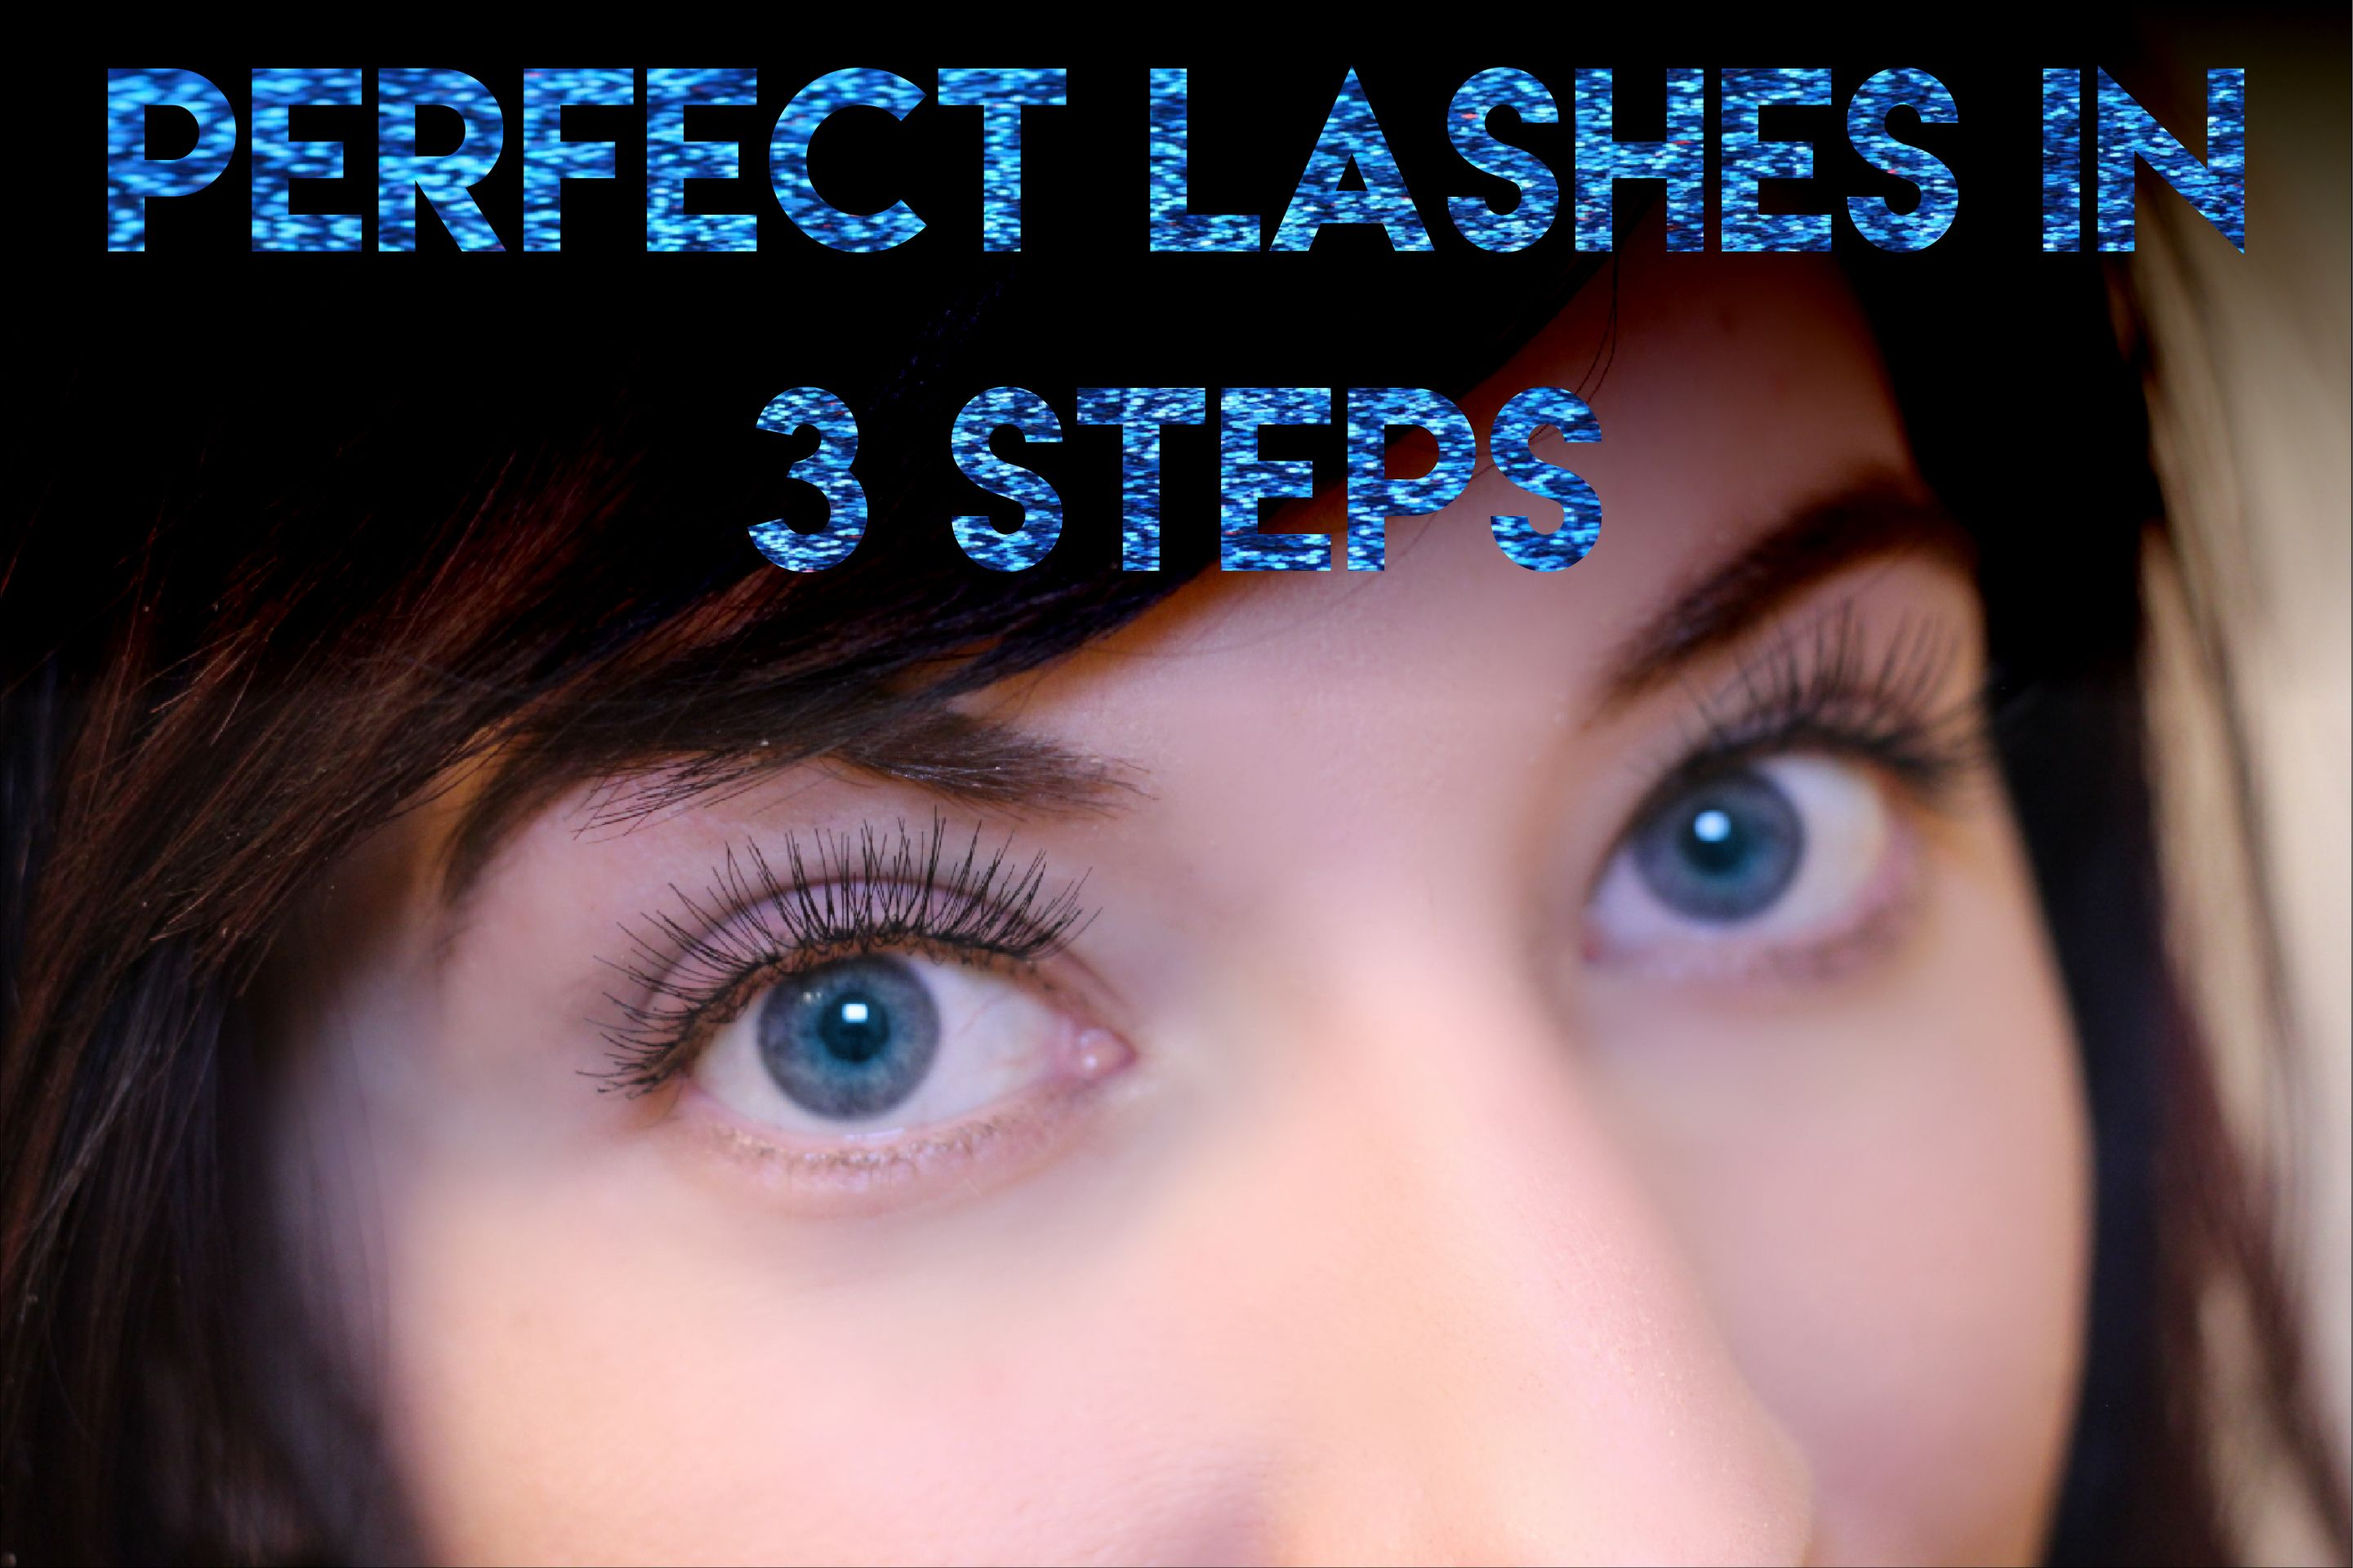 Want to wake up with these lashes? Follow the link to the